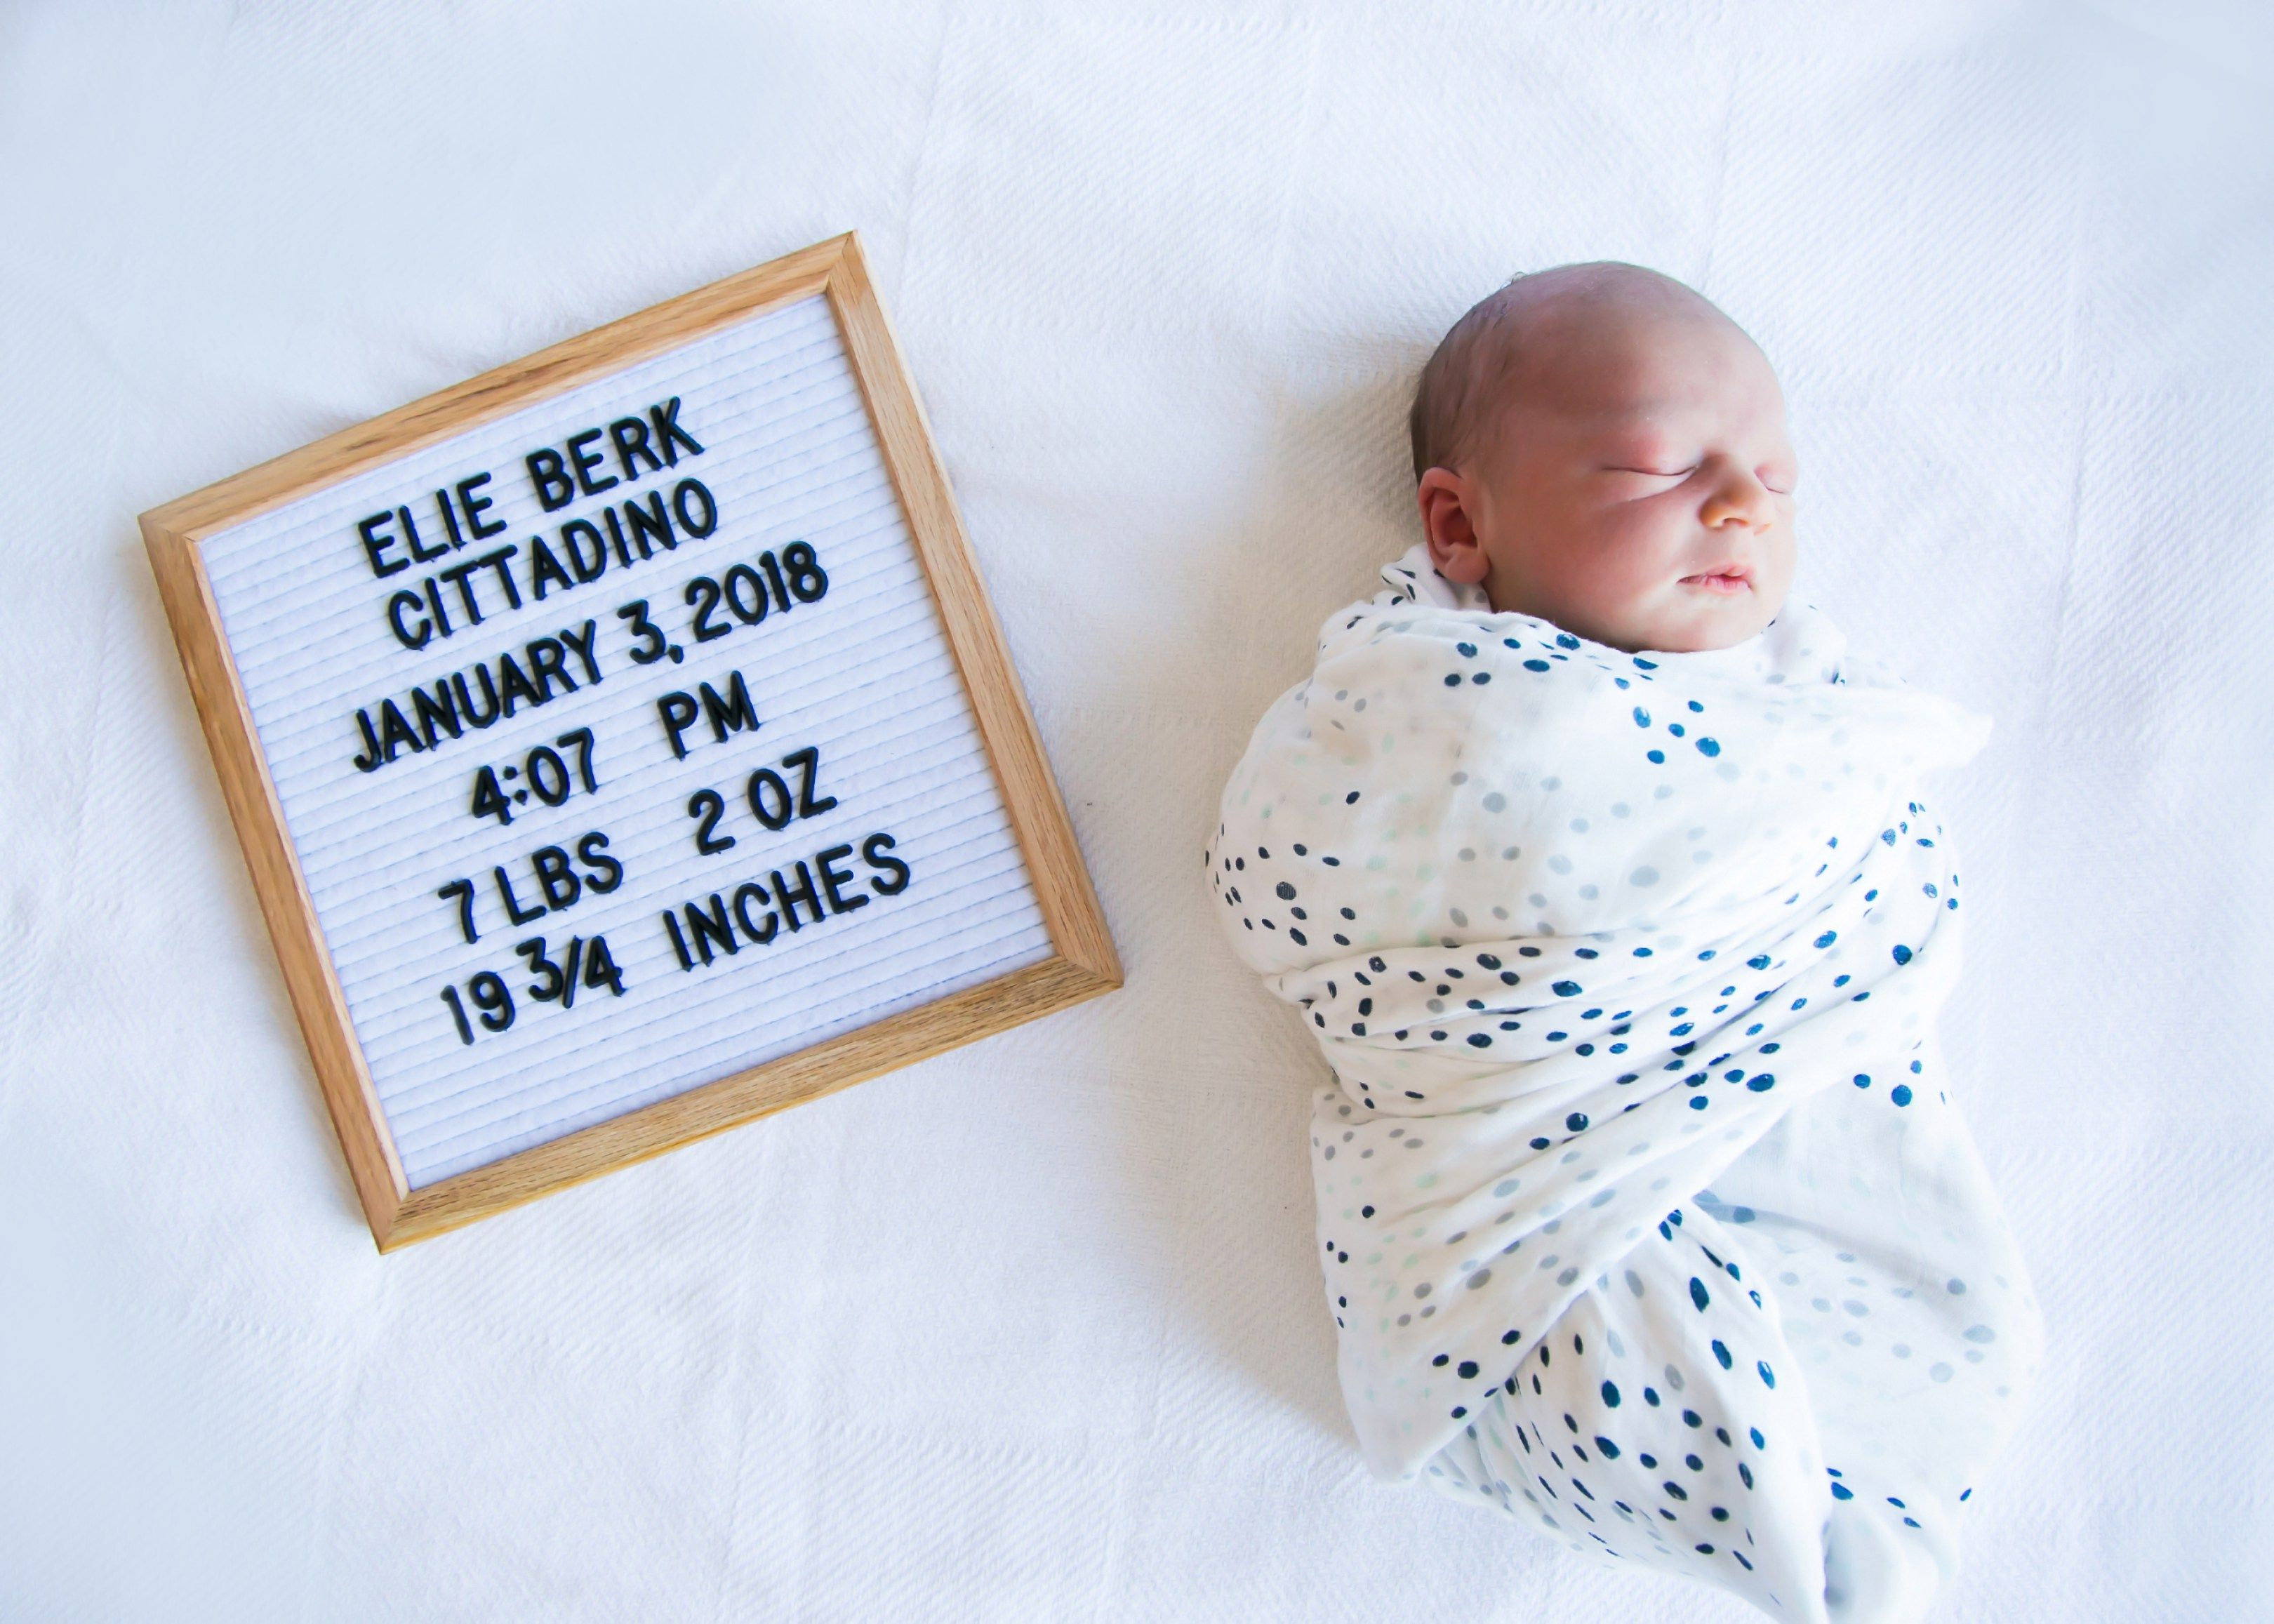 Introducing Elie Berk Cittadino Baby boy birth